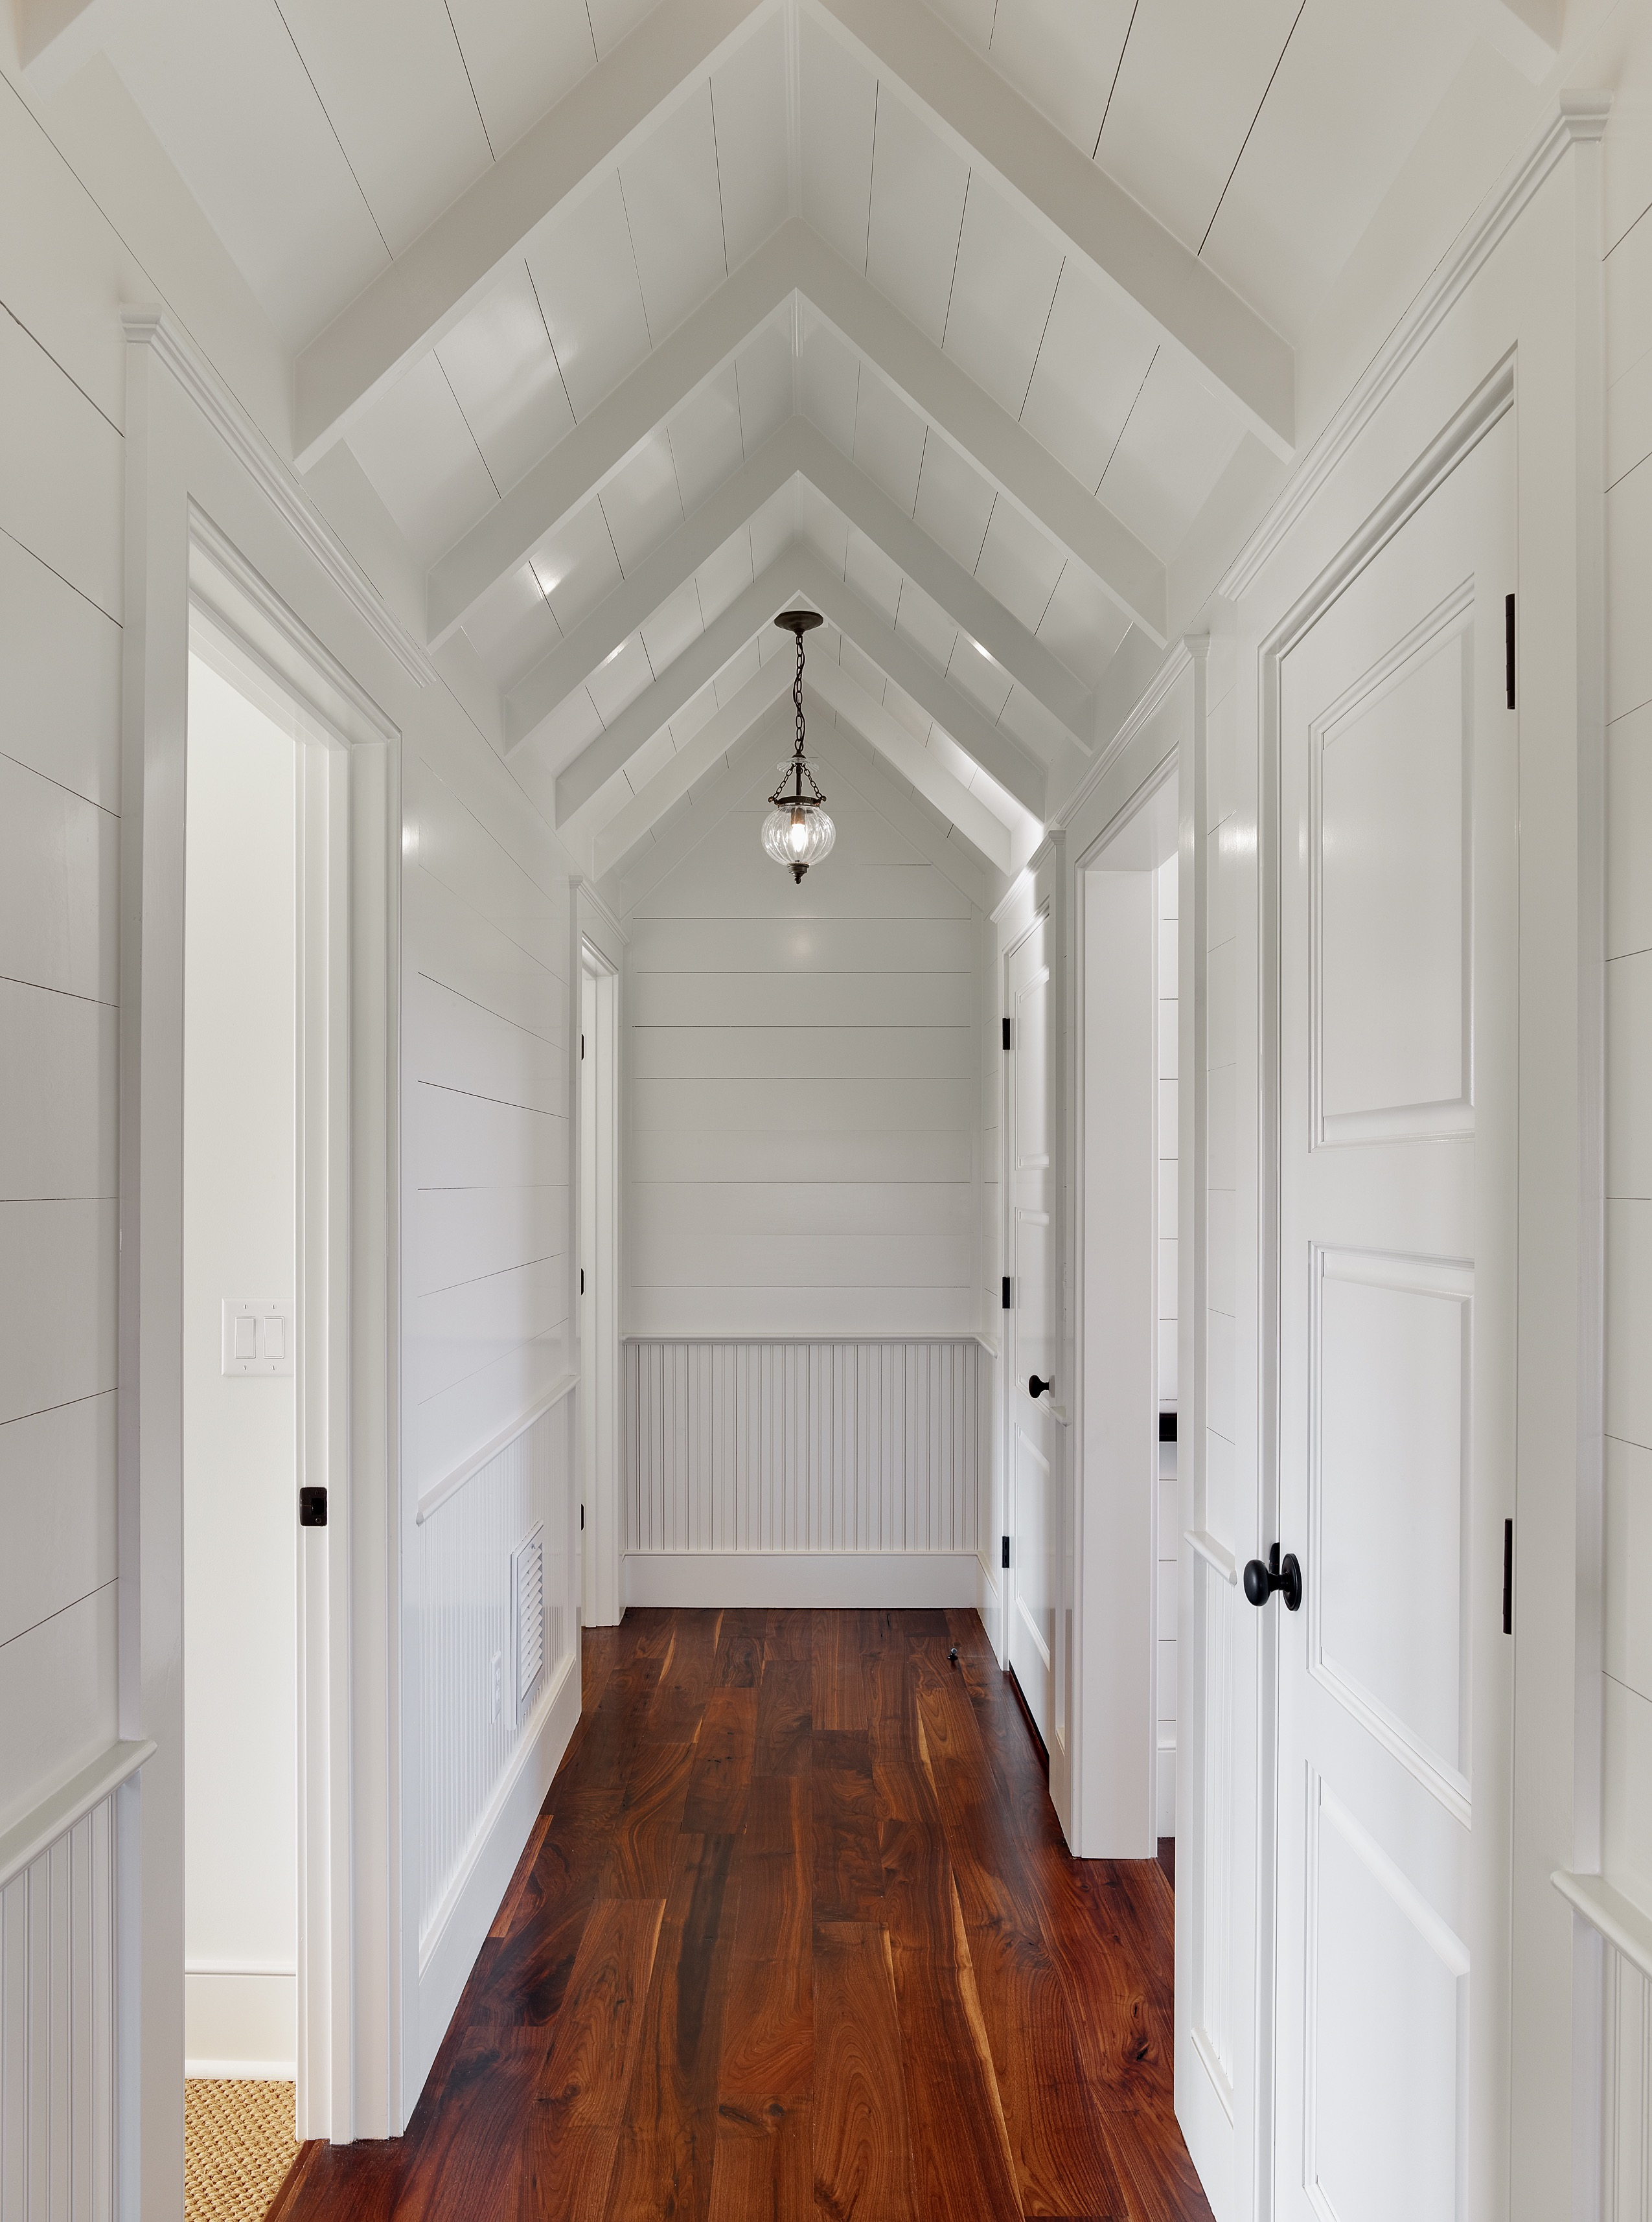 Modern Angled Ceiling With White Paneling And Subtle White Beams (View 3 of 31)